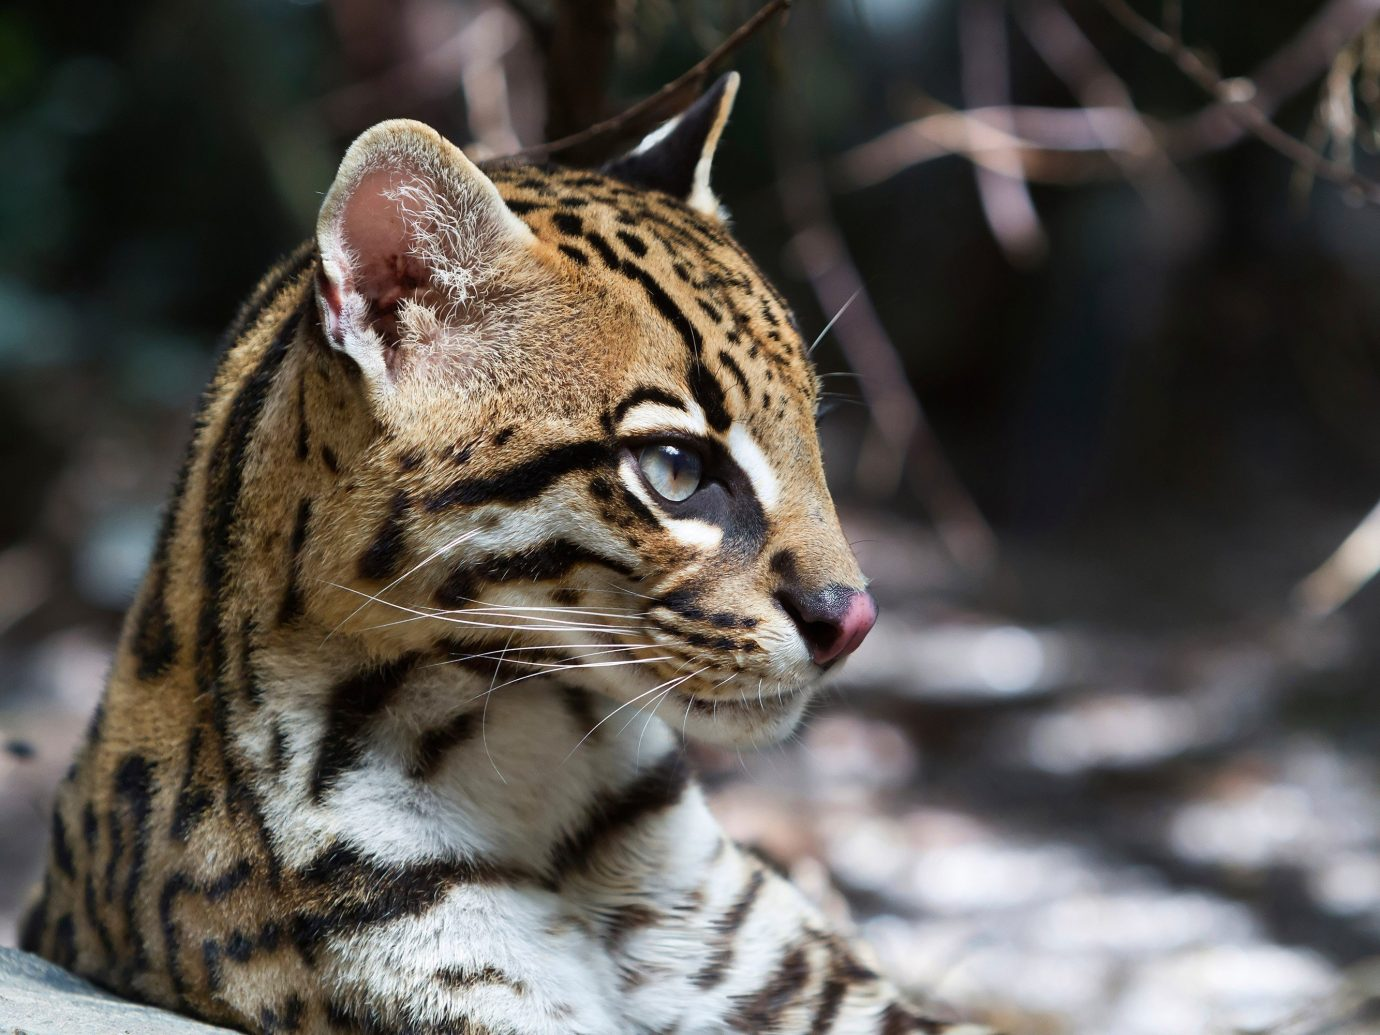 Trip Ideas animal mammal outdoor ocelot vertebrate wildcat whiskers cat fauna Wildlife wild cat cat like mammal close up small to medium sized cats bengal rusty spotted cat savannah